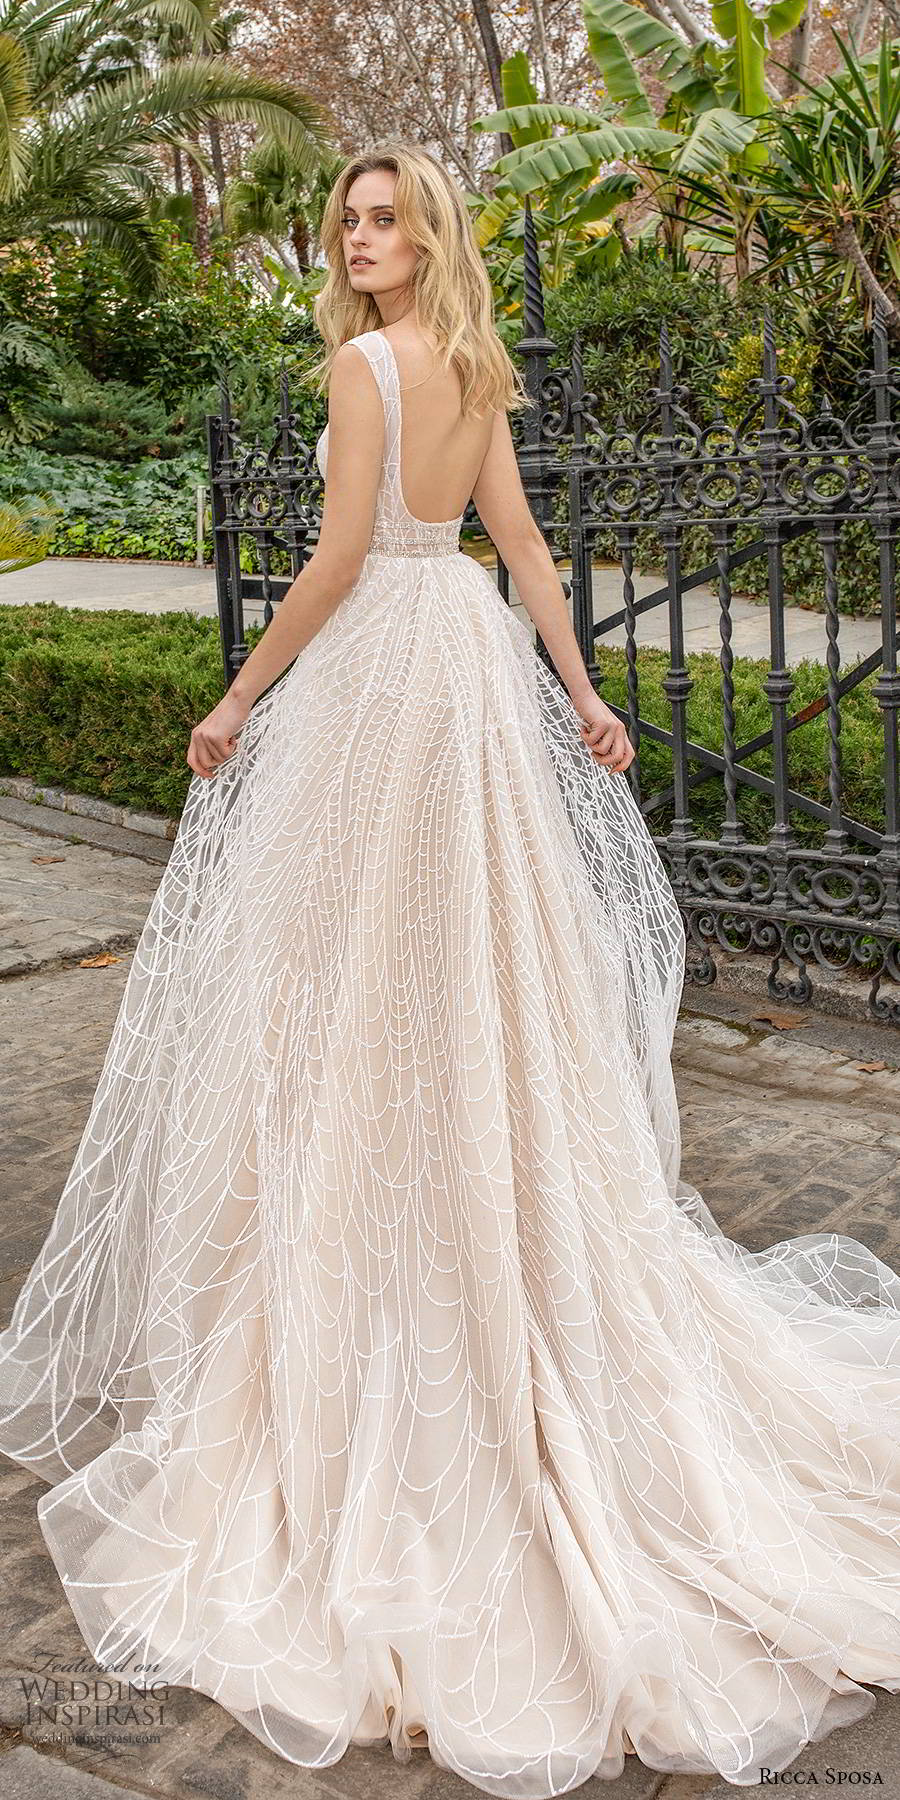 ricca sposa 2019 bridal cap sleeves deep v neckline a line ball gown wedding dress slit skirt chapel train (7) bv